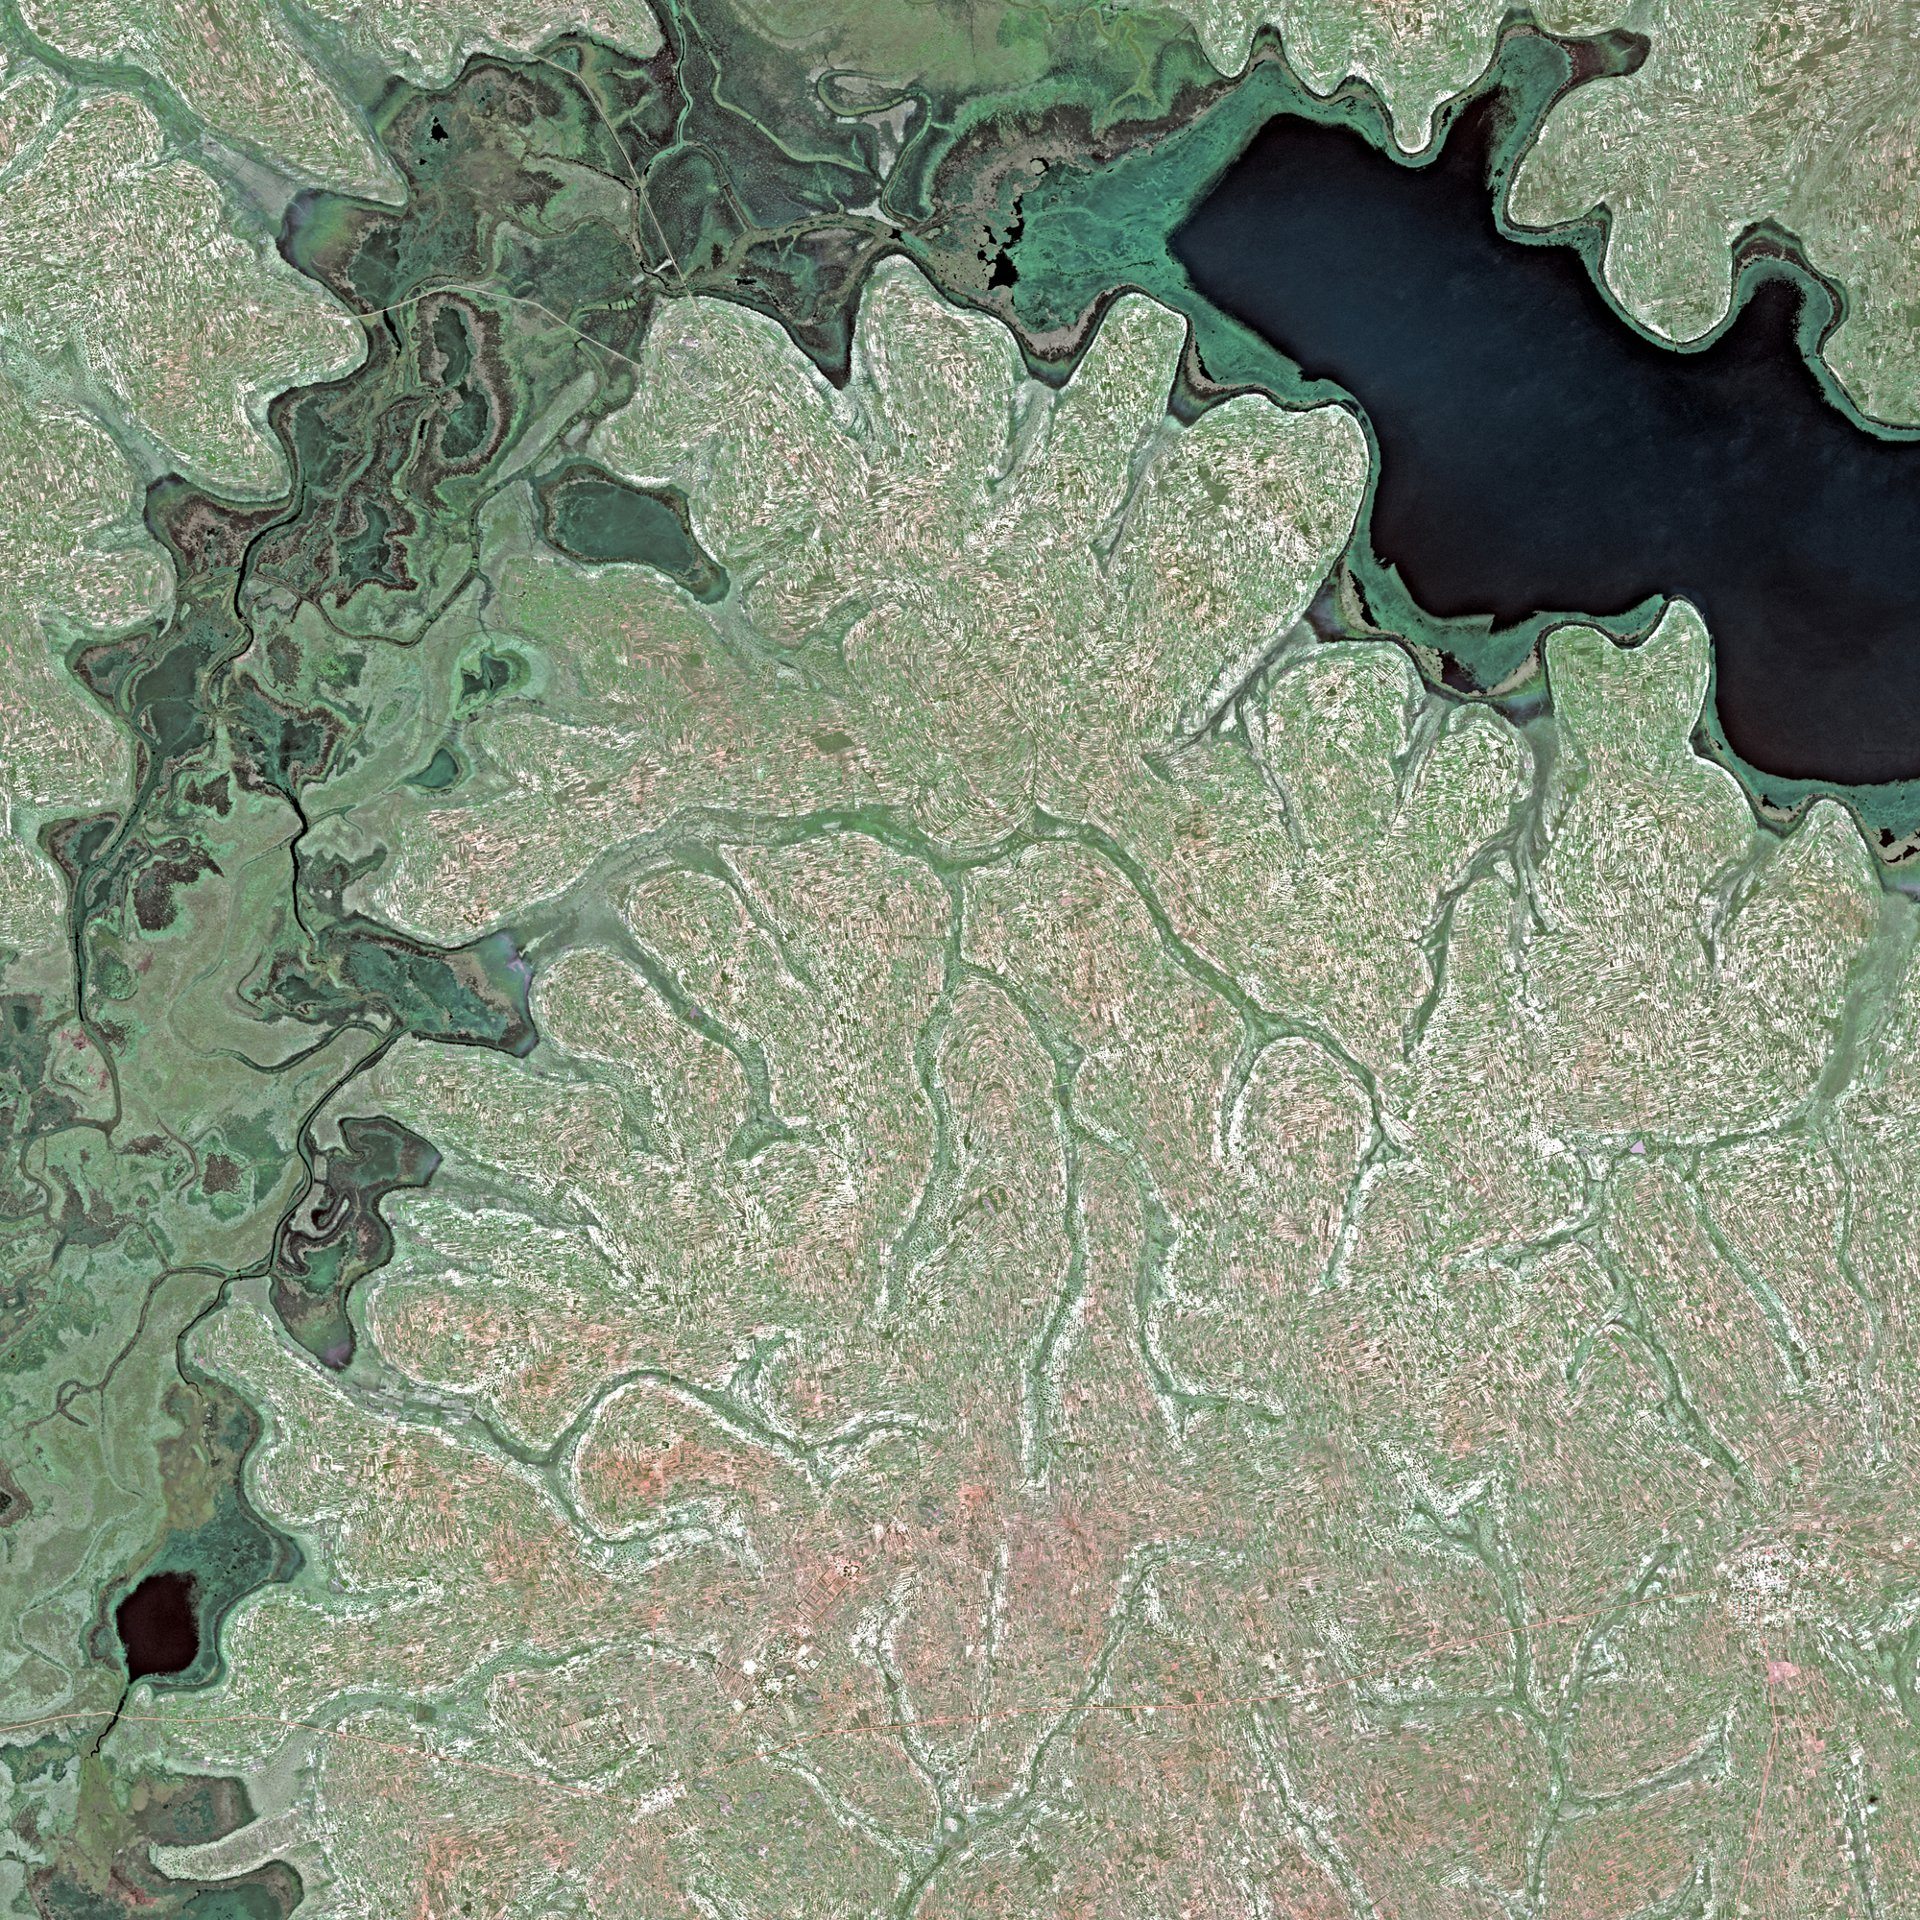 Lake Kyoga, Uganda